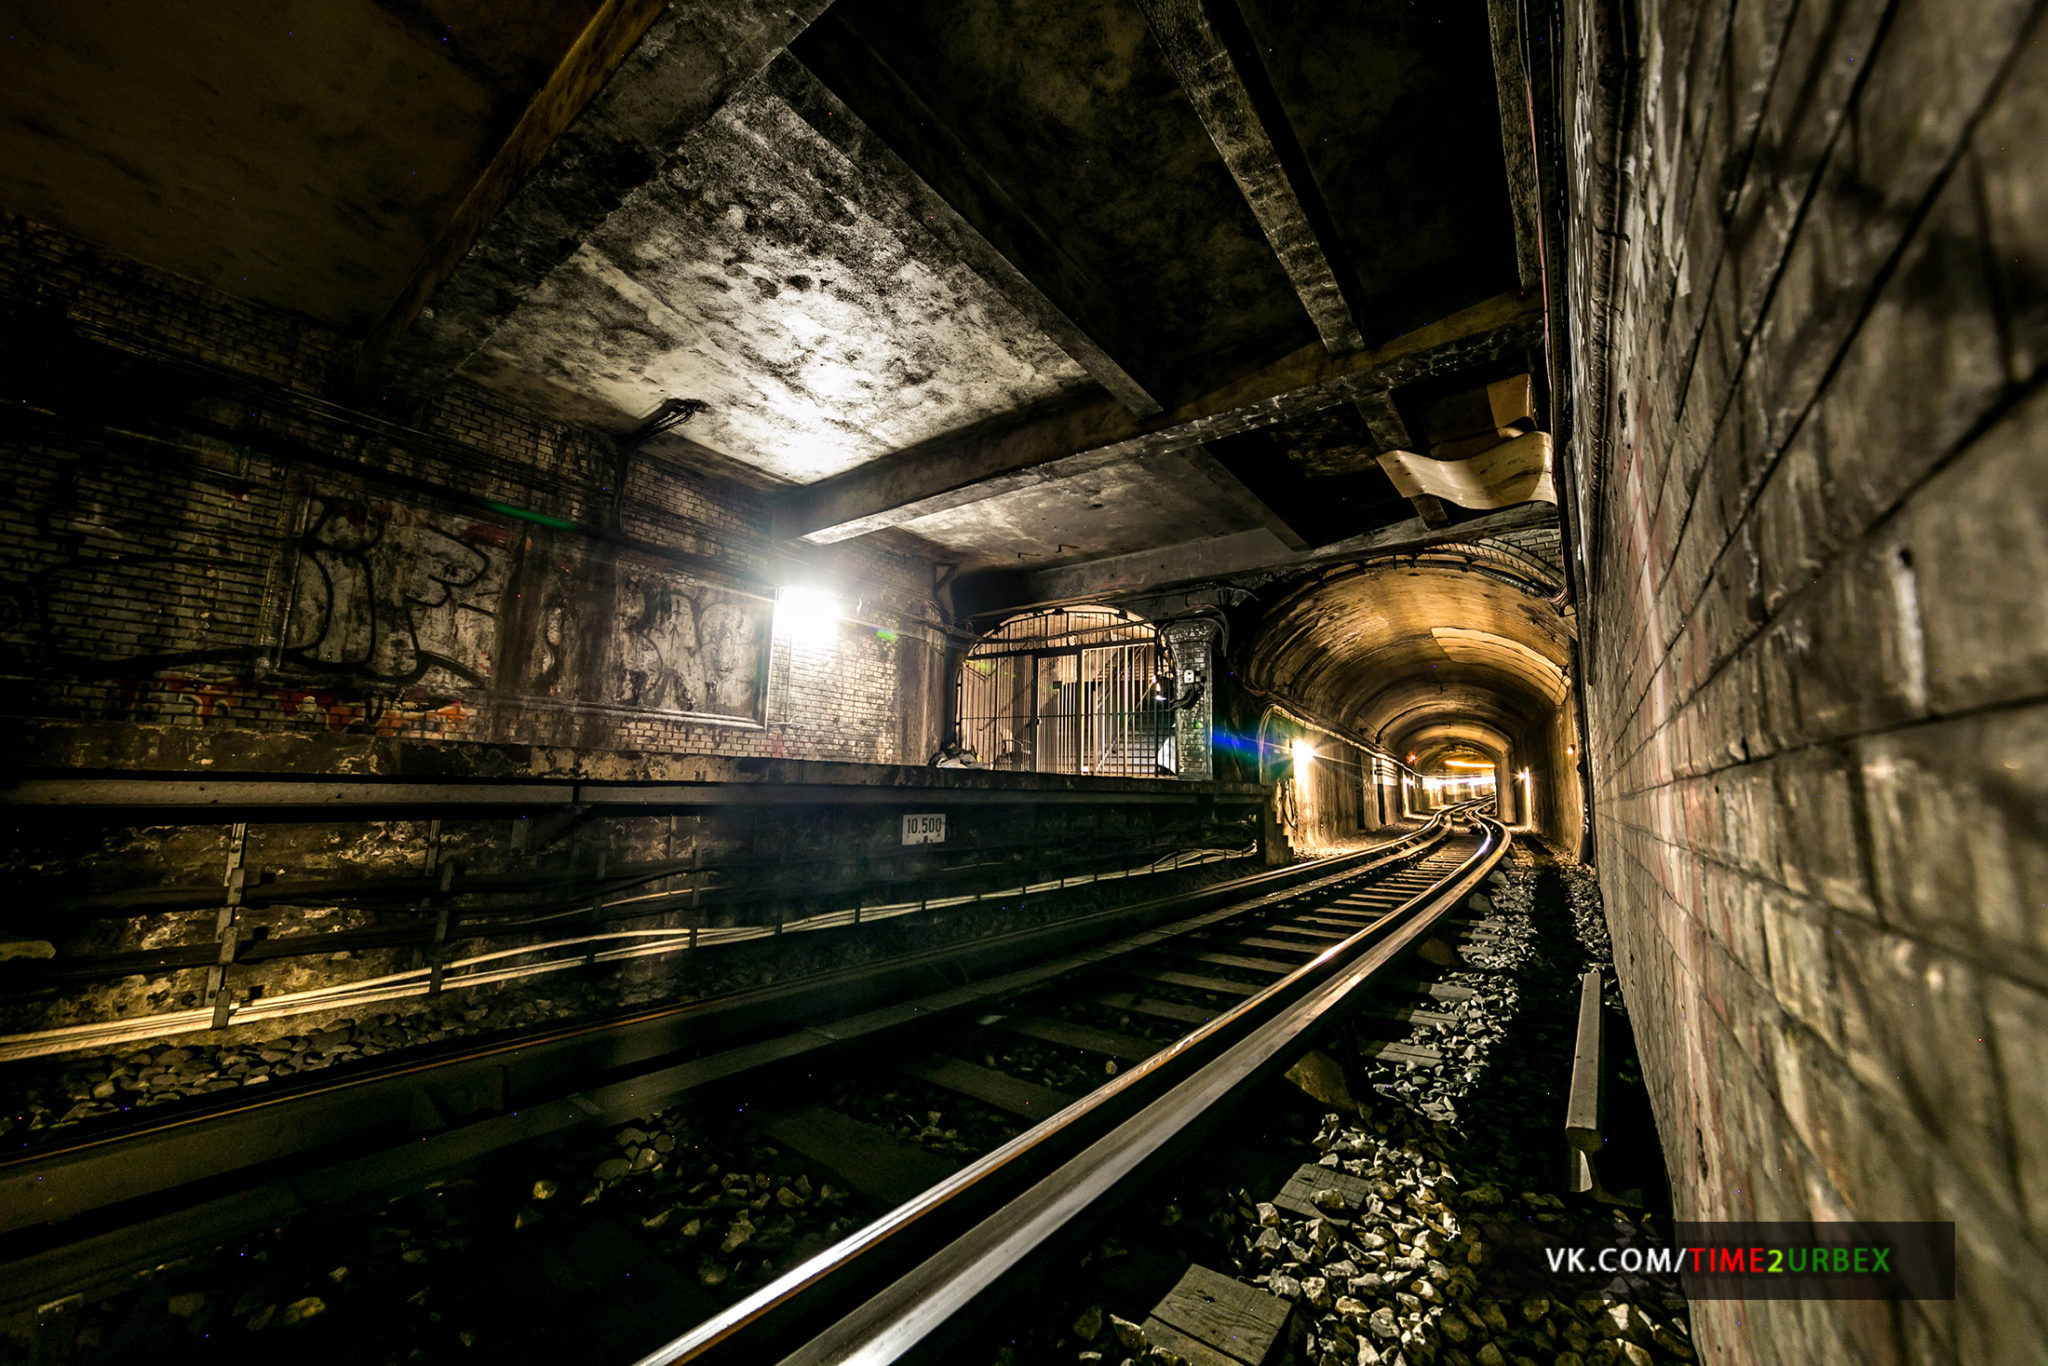 10 7 GHOST STATIONS OF THE PARIS METRO AND HOW TO GET INTO THE ILLEGALLY + UNUSUAL TUNNELS + RER